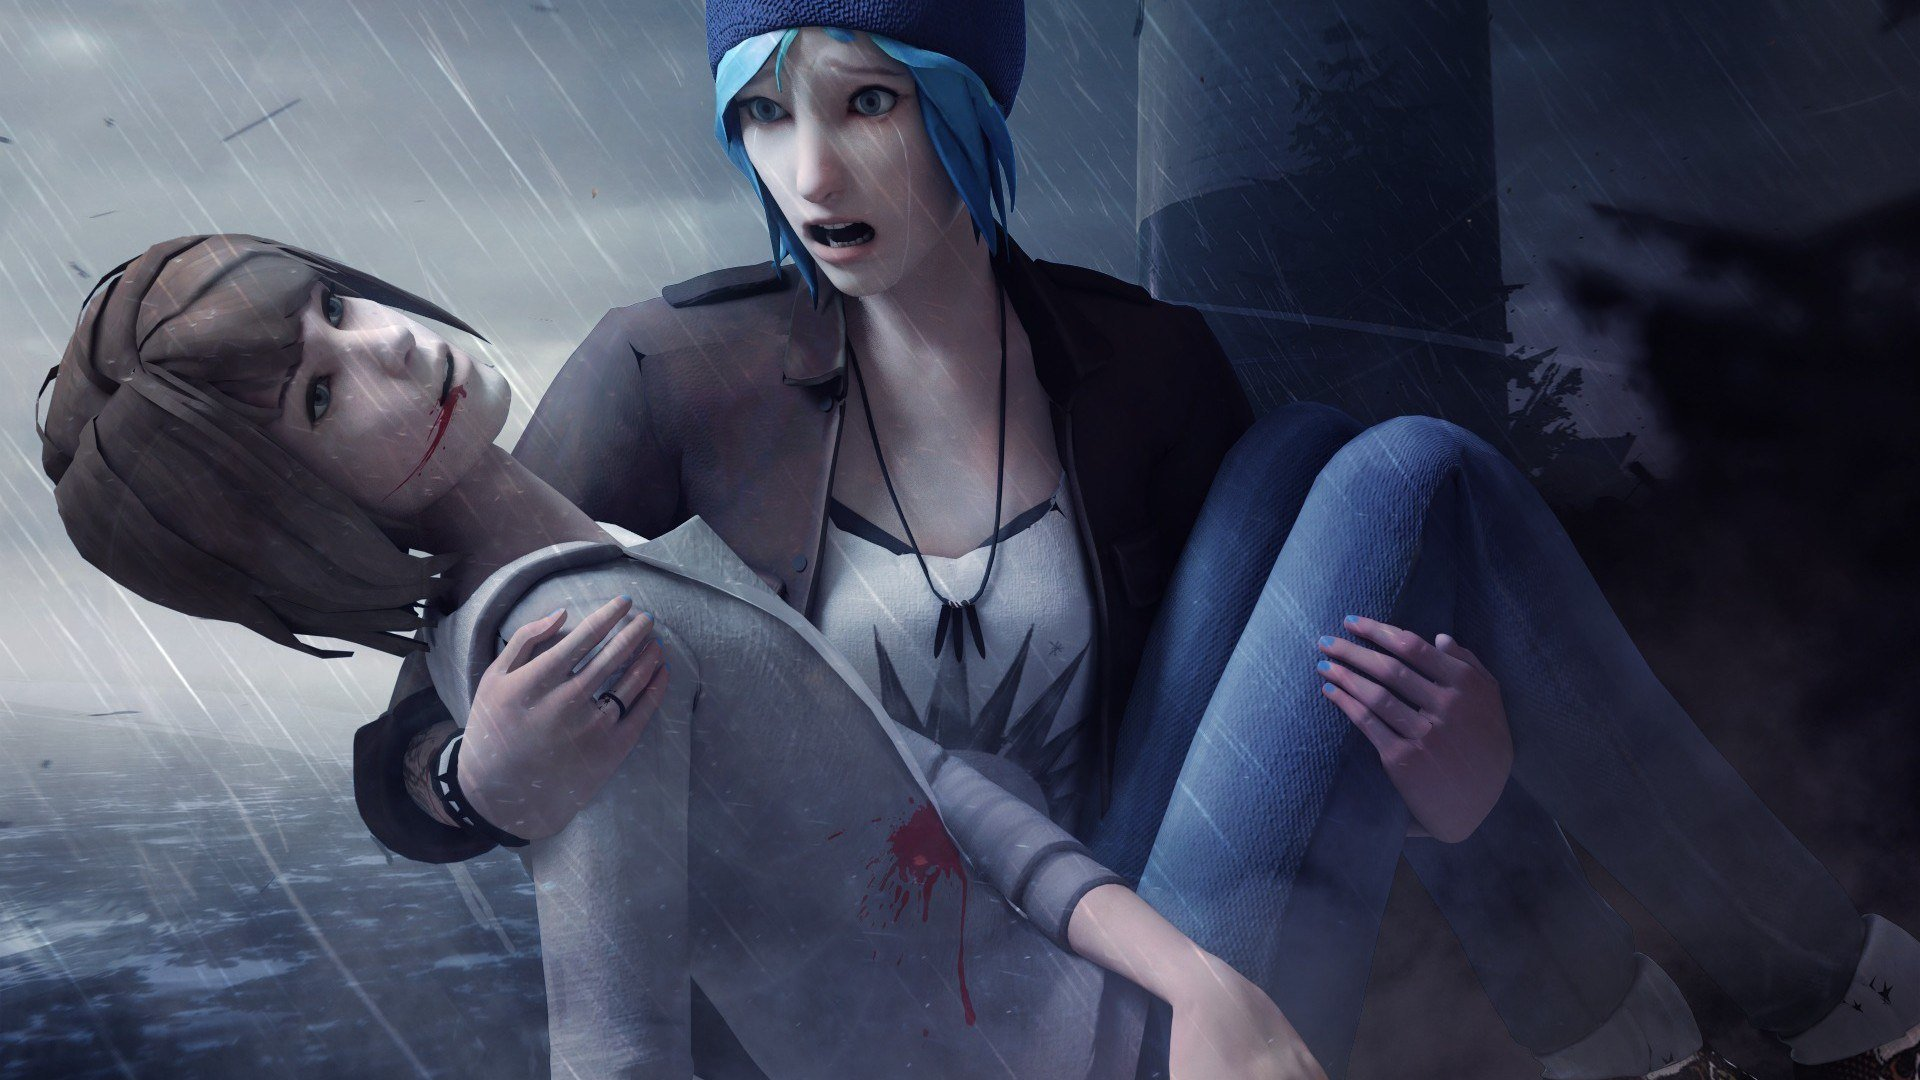 Download Full Hd Life Is Strange Desktop Wallpaper Id 148233 For Free